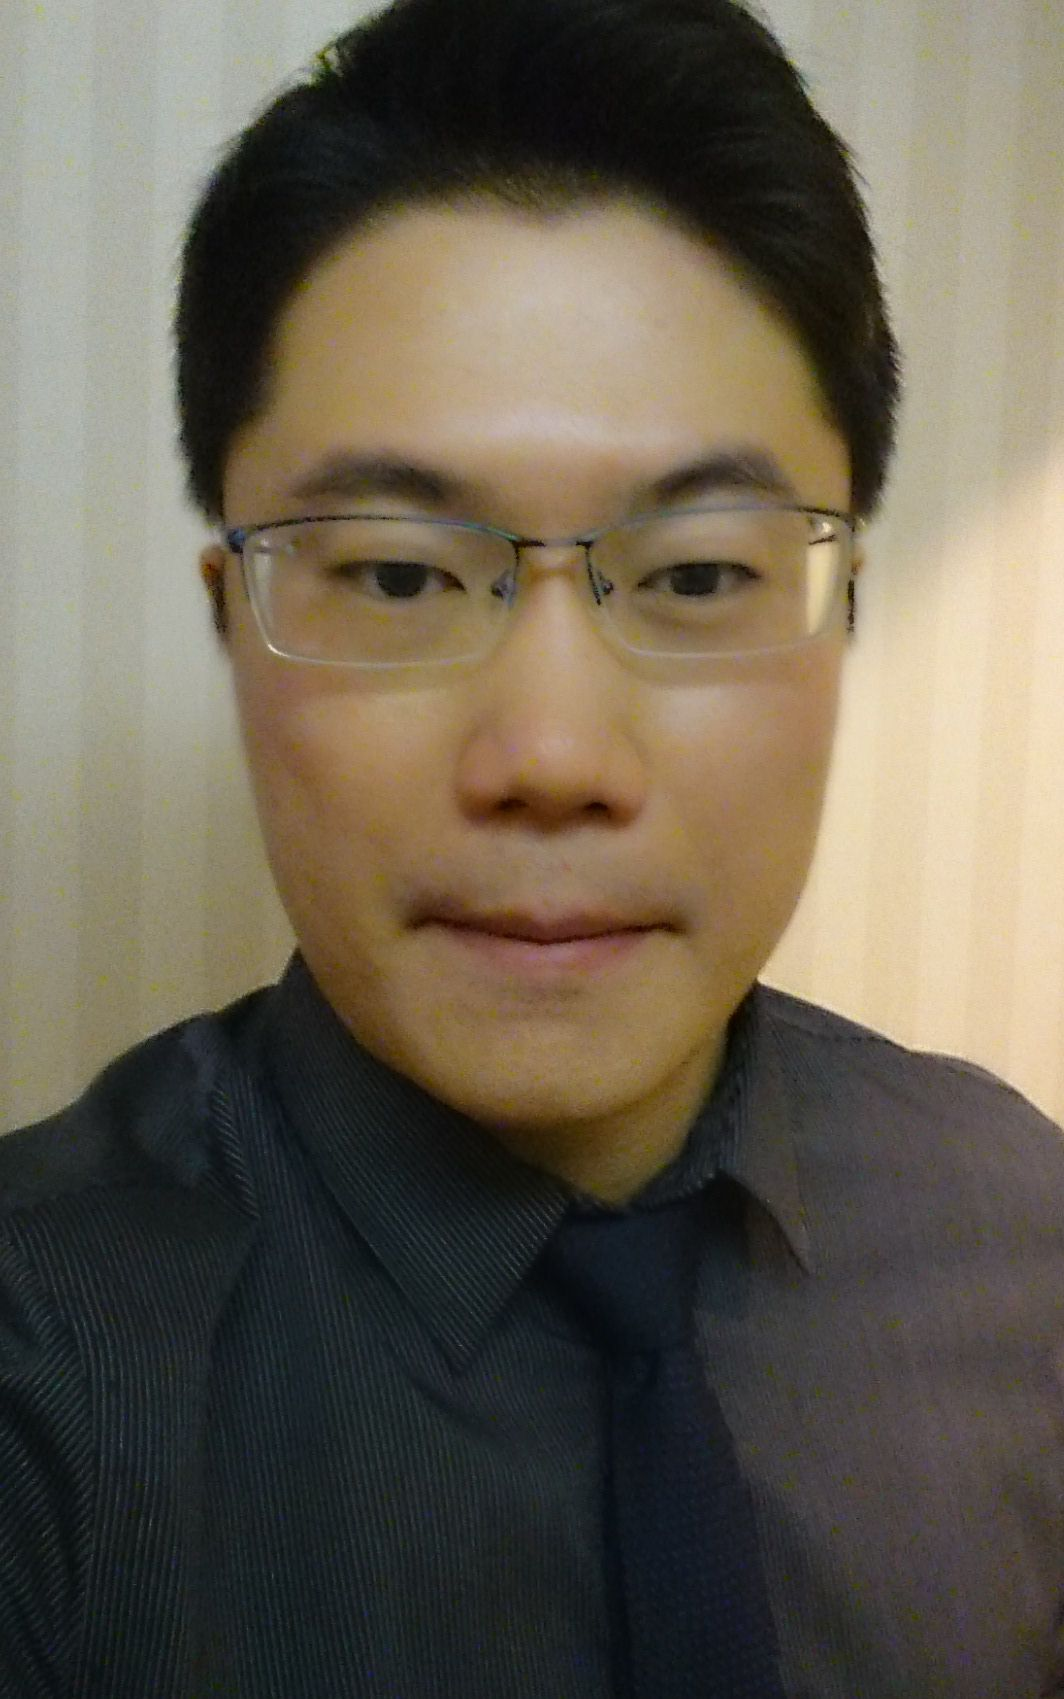 Photograph of Dr. Zhenhua Luo